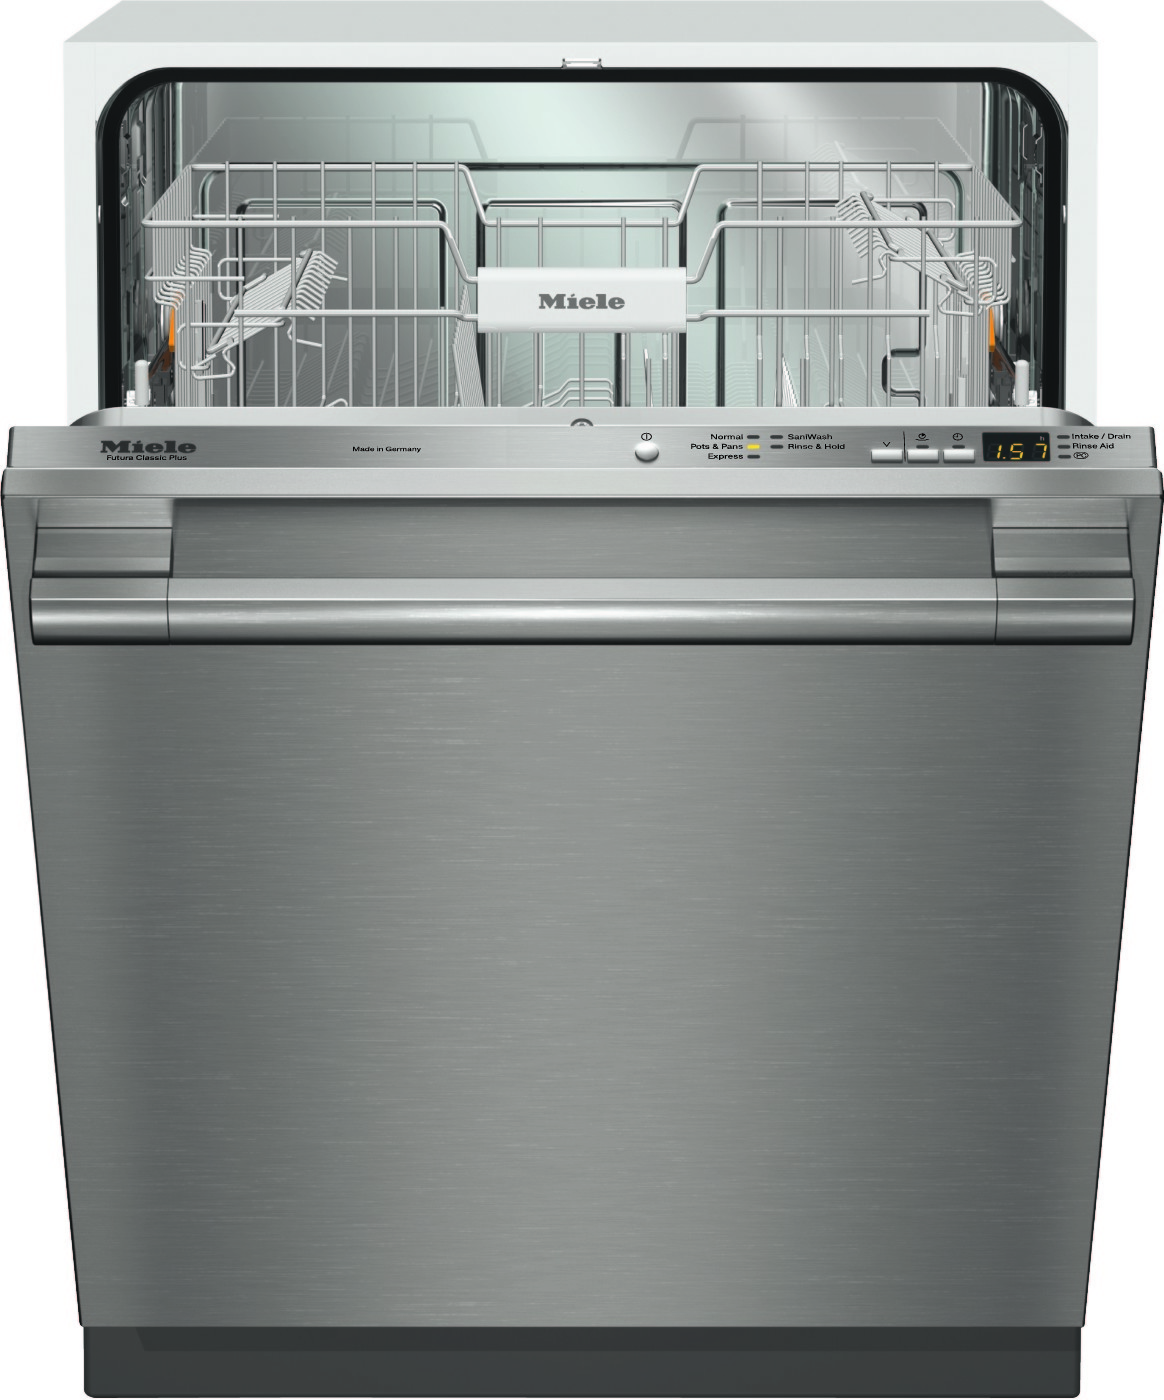 Miele G4975visf Fully Integrated Dishwasher With 5 Wash